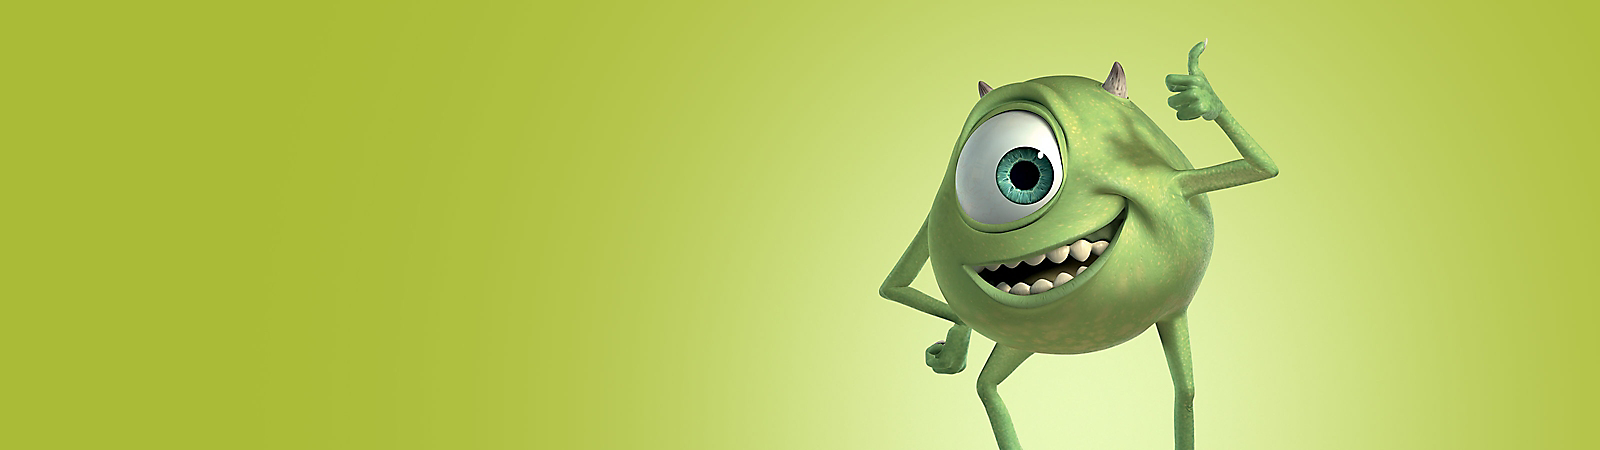 Background image of Mike Wazowski